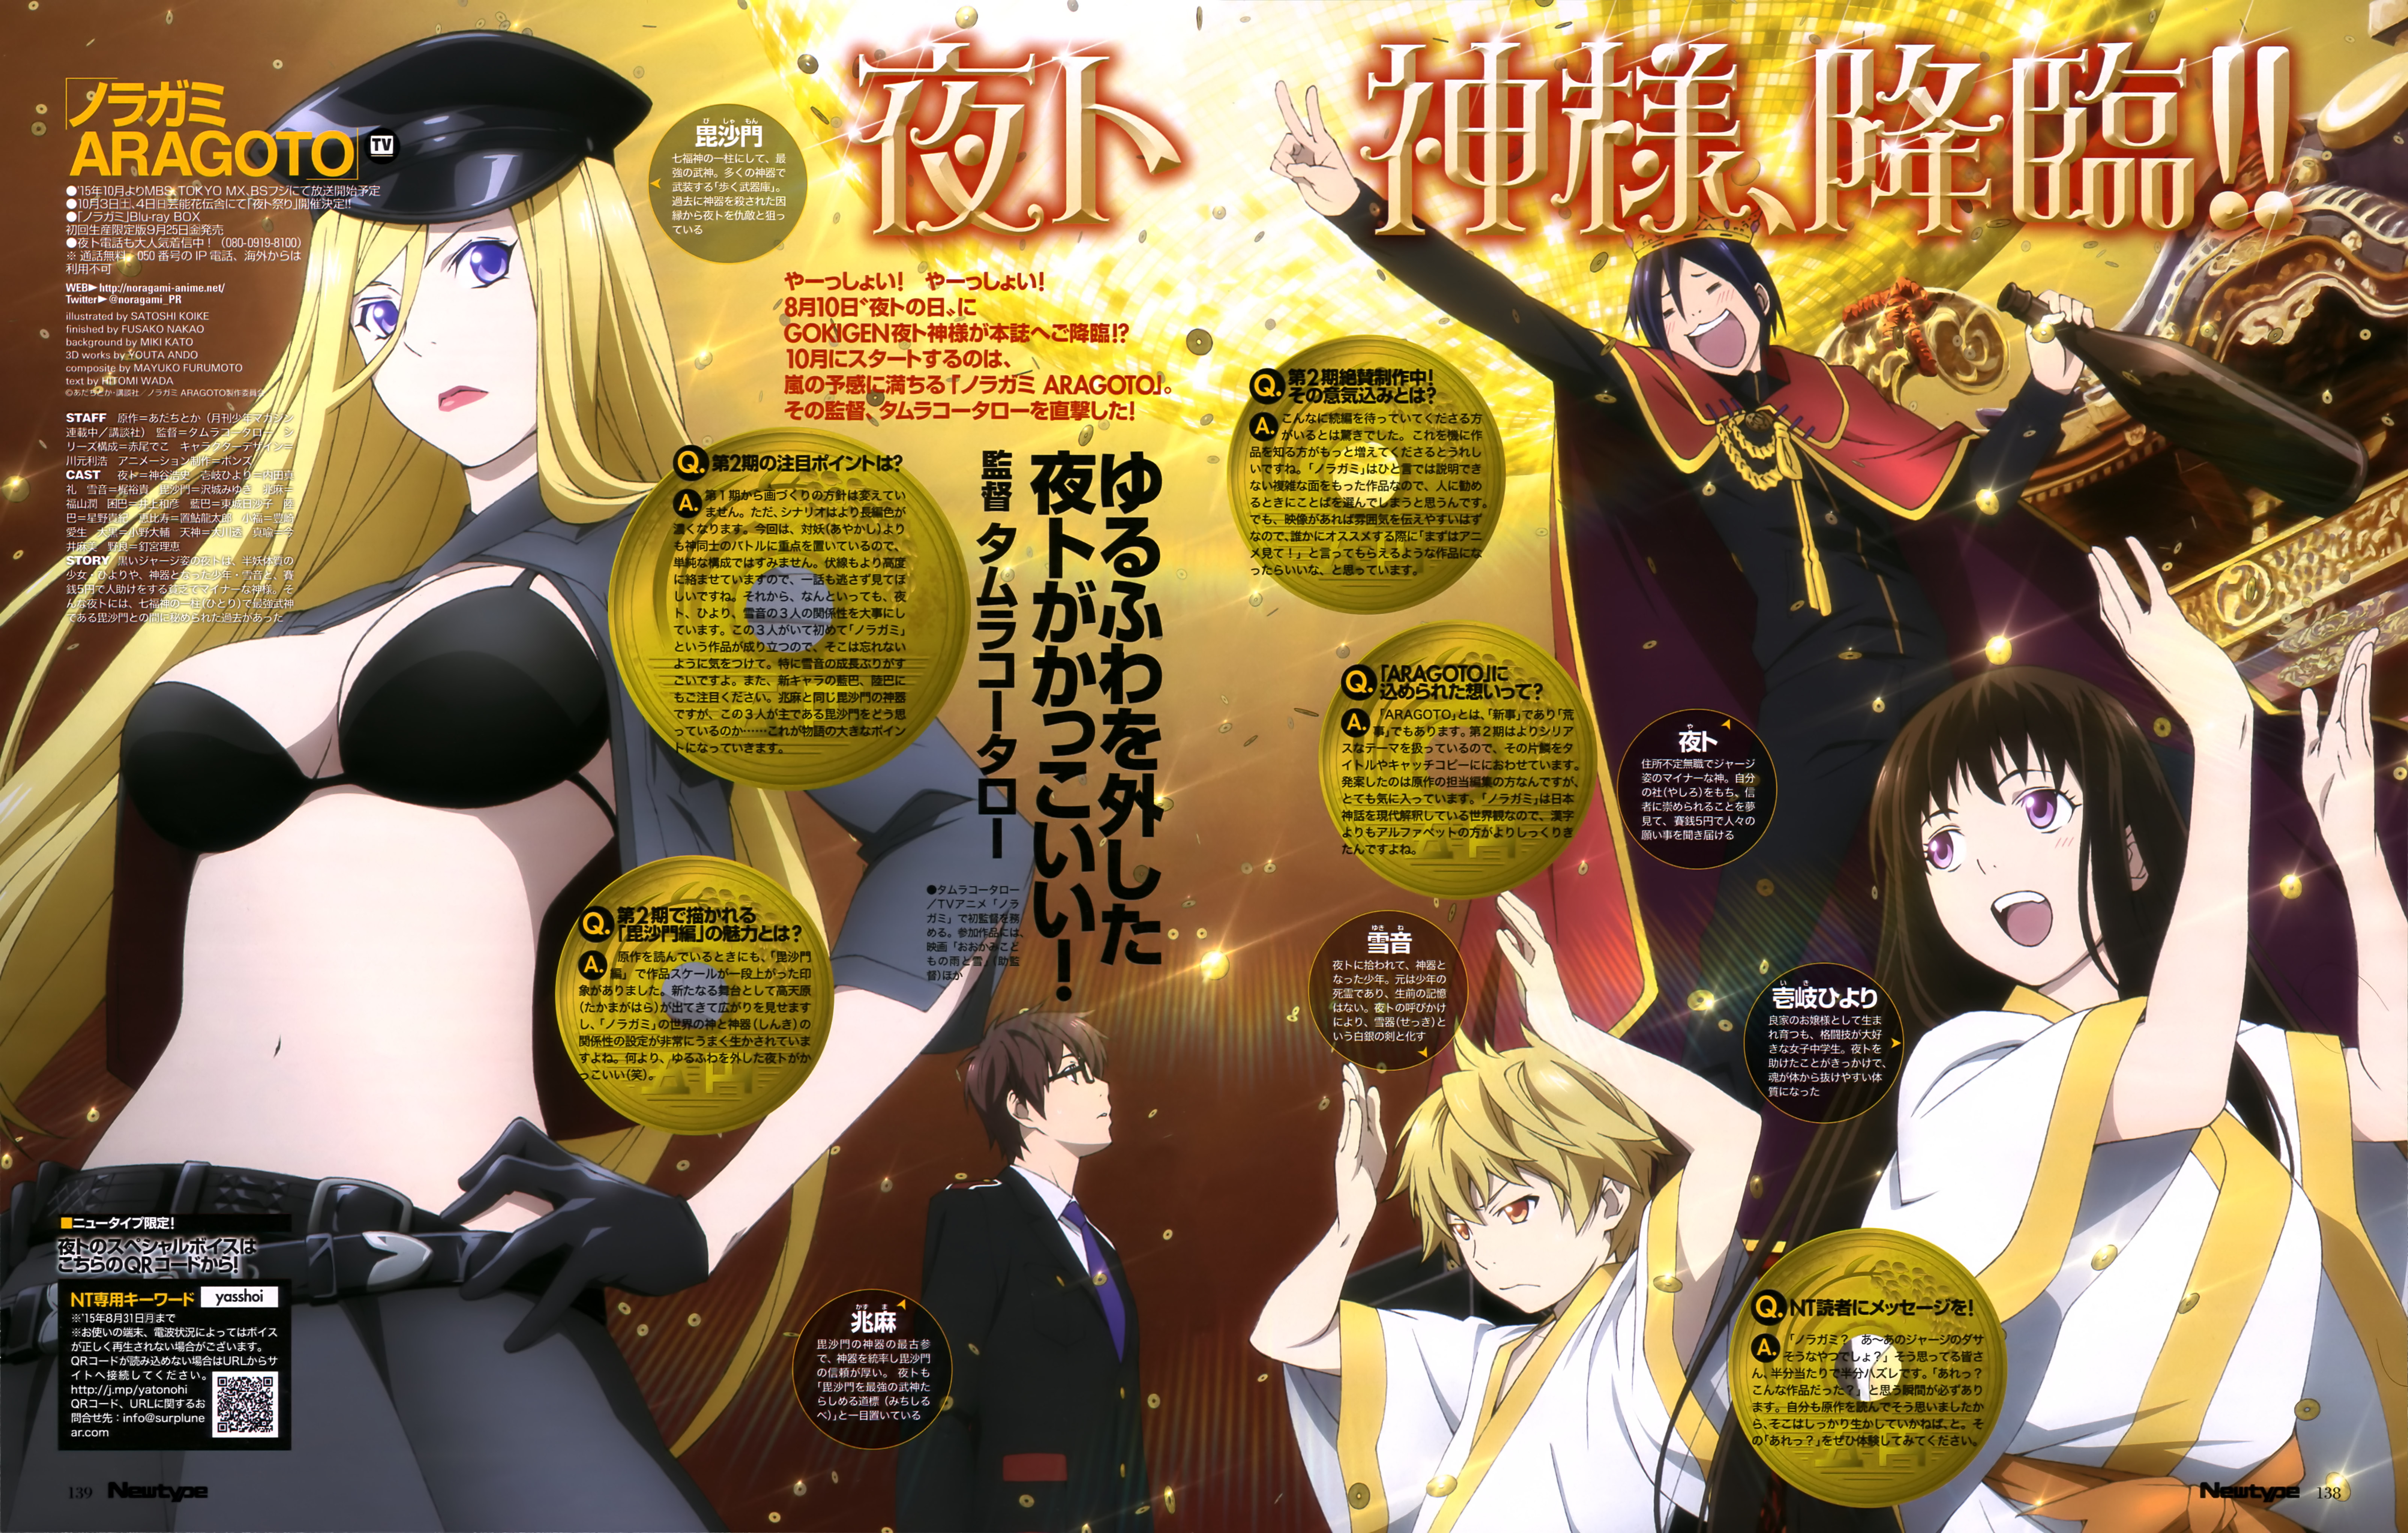 Noragami Aragoto anime visual revealed in september issue of newtype